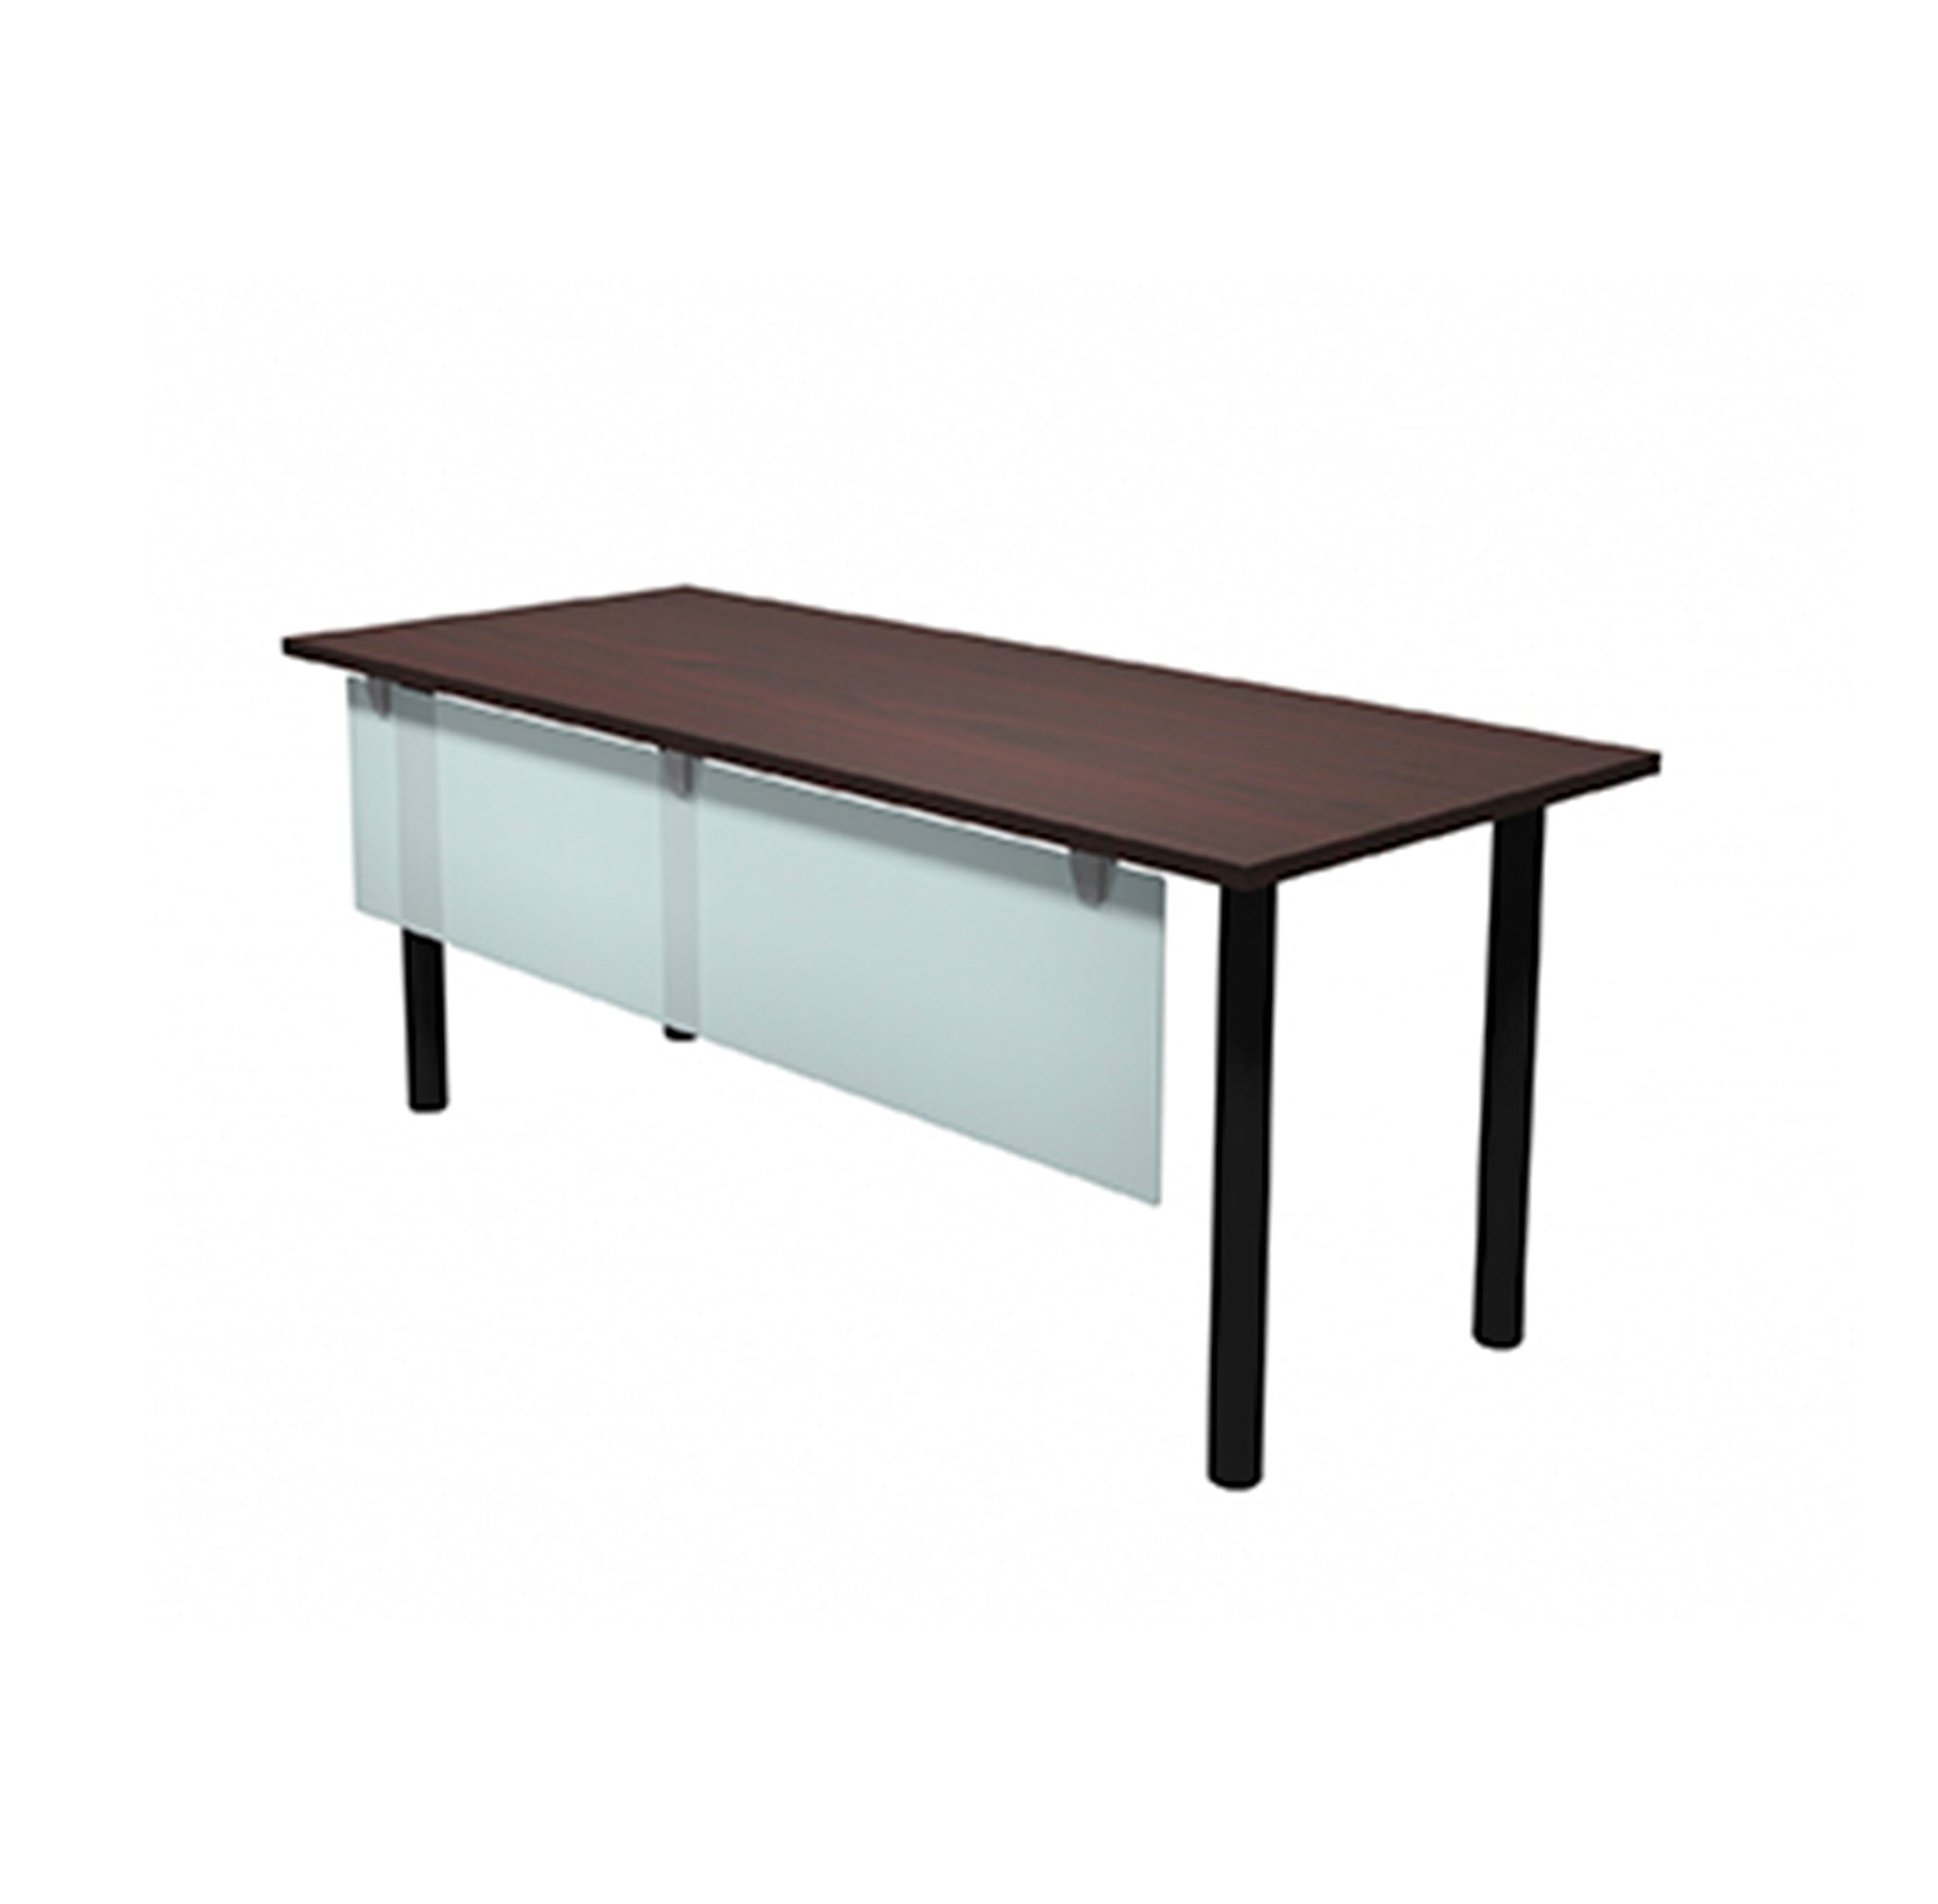 "Innovations 24 x 48"" Rectangular Table"